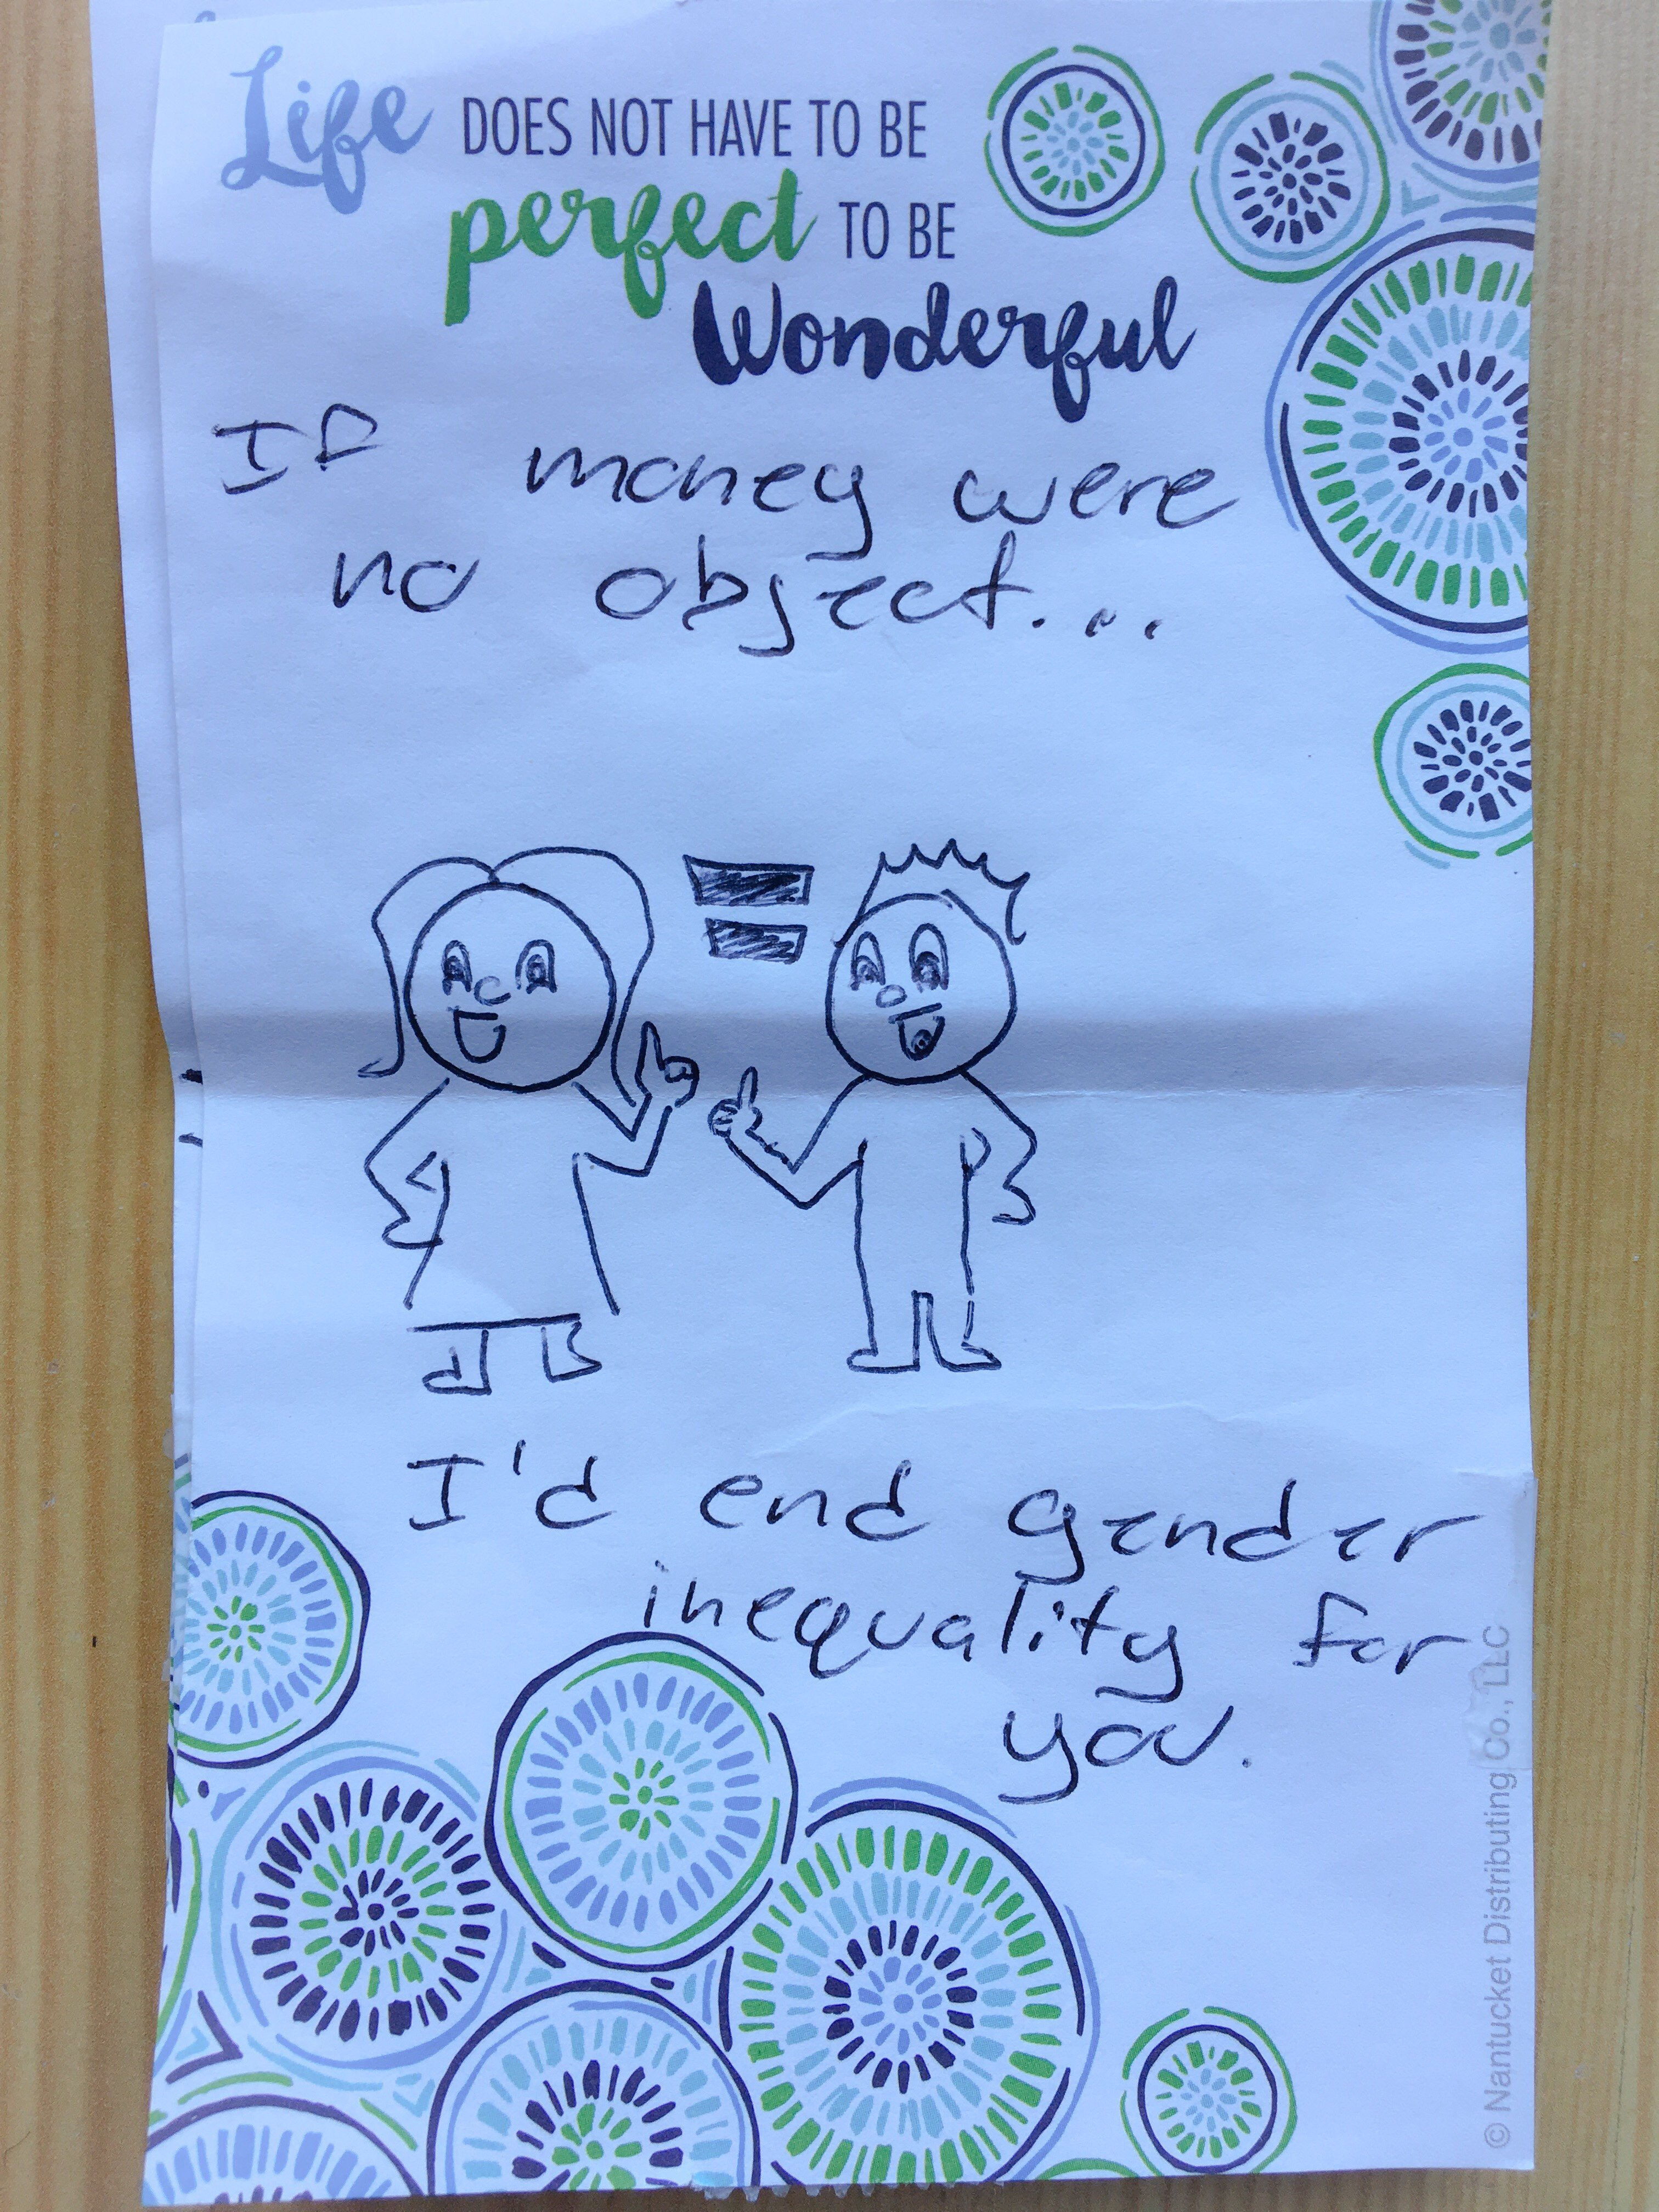 If money were no object, I'd end gender inequality for you.